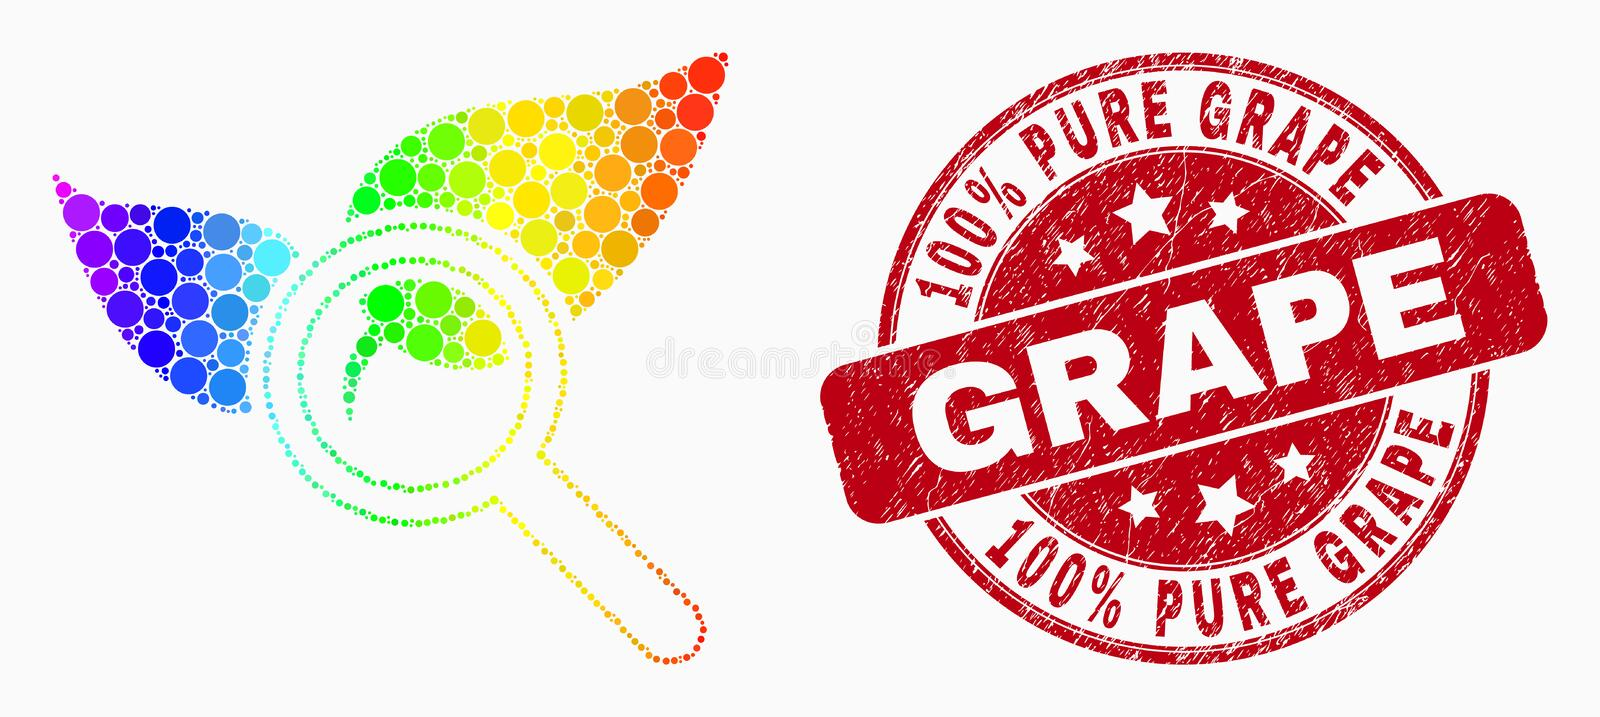 Vector Spectrum Pixel Search Flora Plant Icon and Grunge 100 Percent Pure Grape Stamp Seal vector illustration